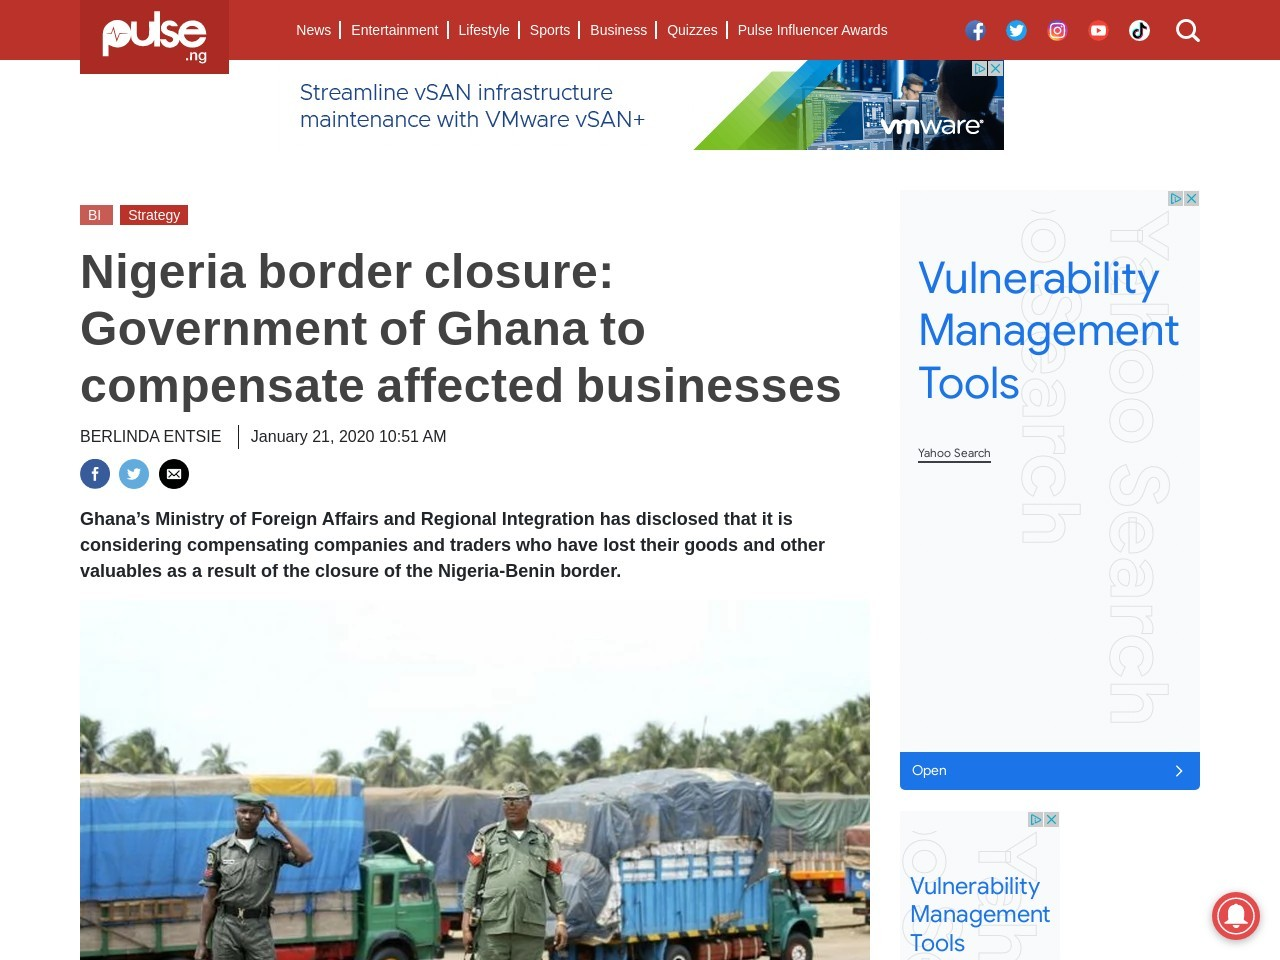 Nigeria border closure: Government of Ghana to compensate affected businesses